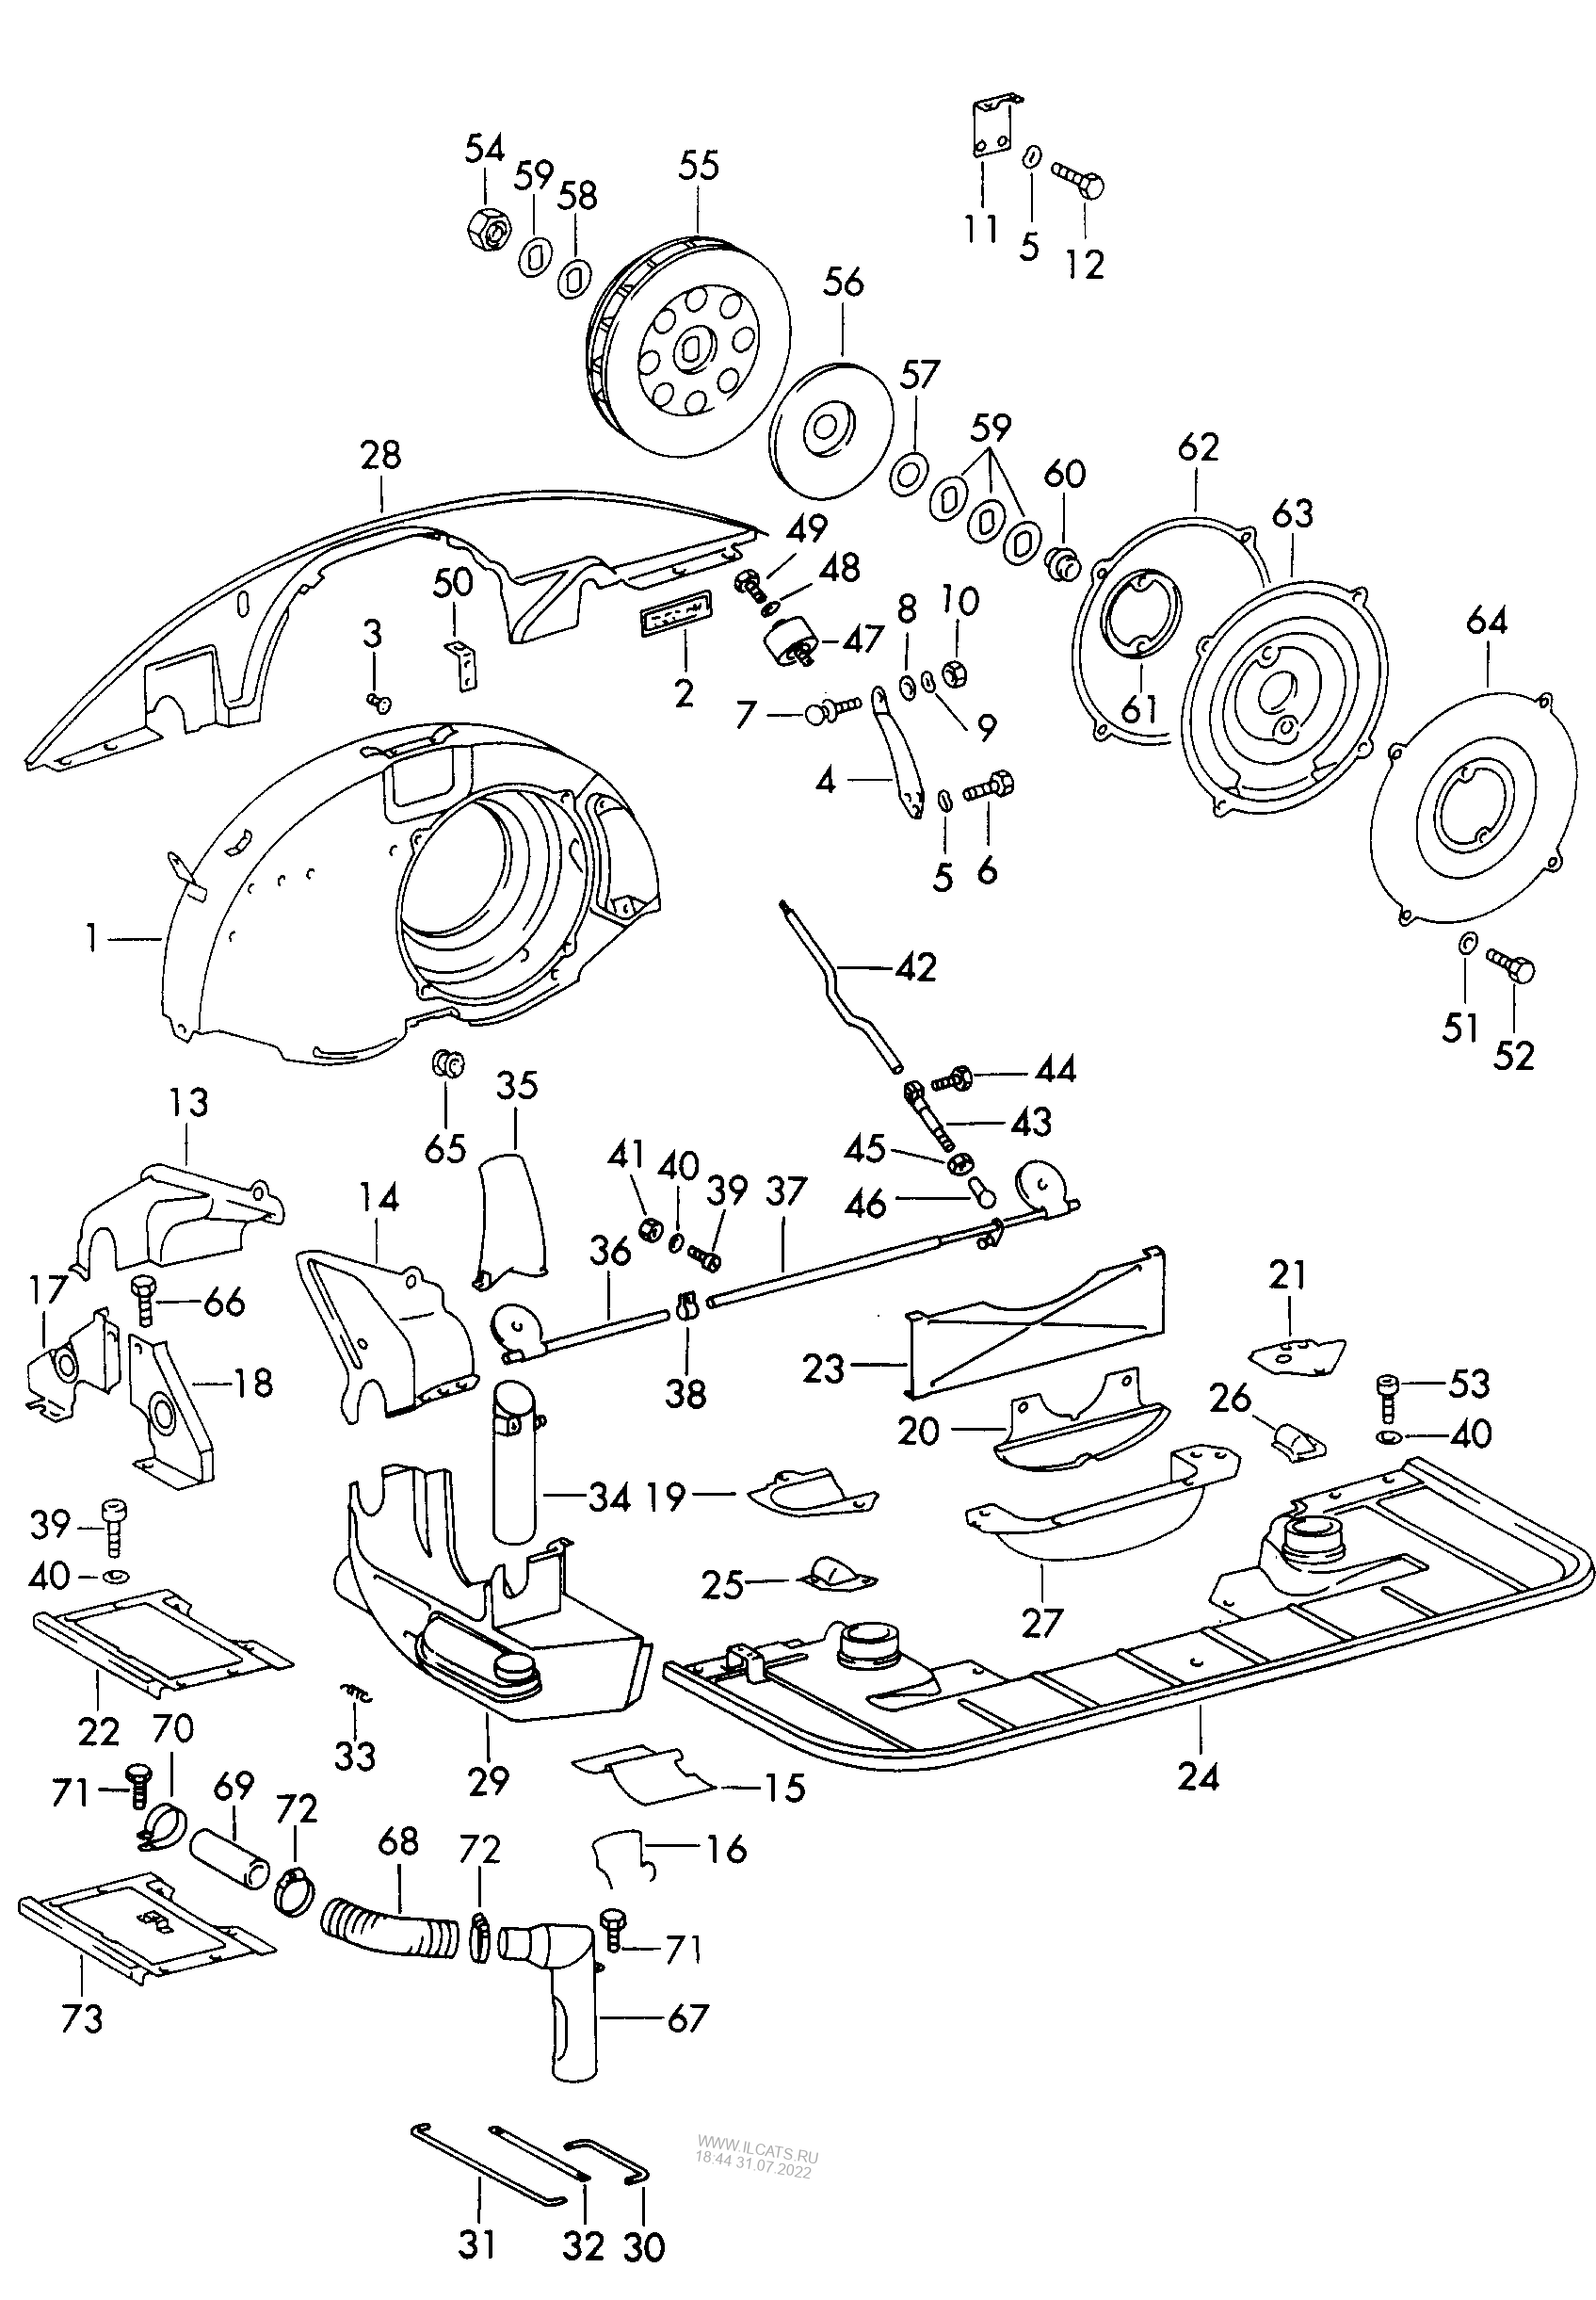 1967 porsche 912 wiring diagram 1968 porsche 912 engine diagram wiring diagram data  1968 porsche 912 engine diagram